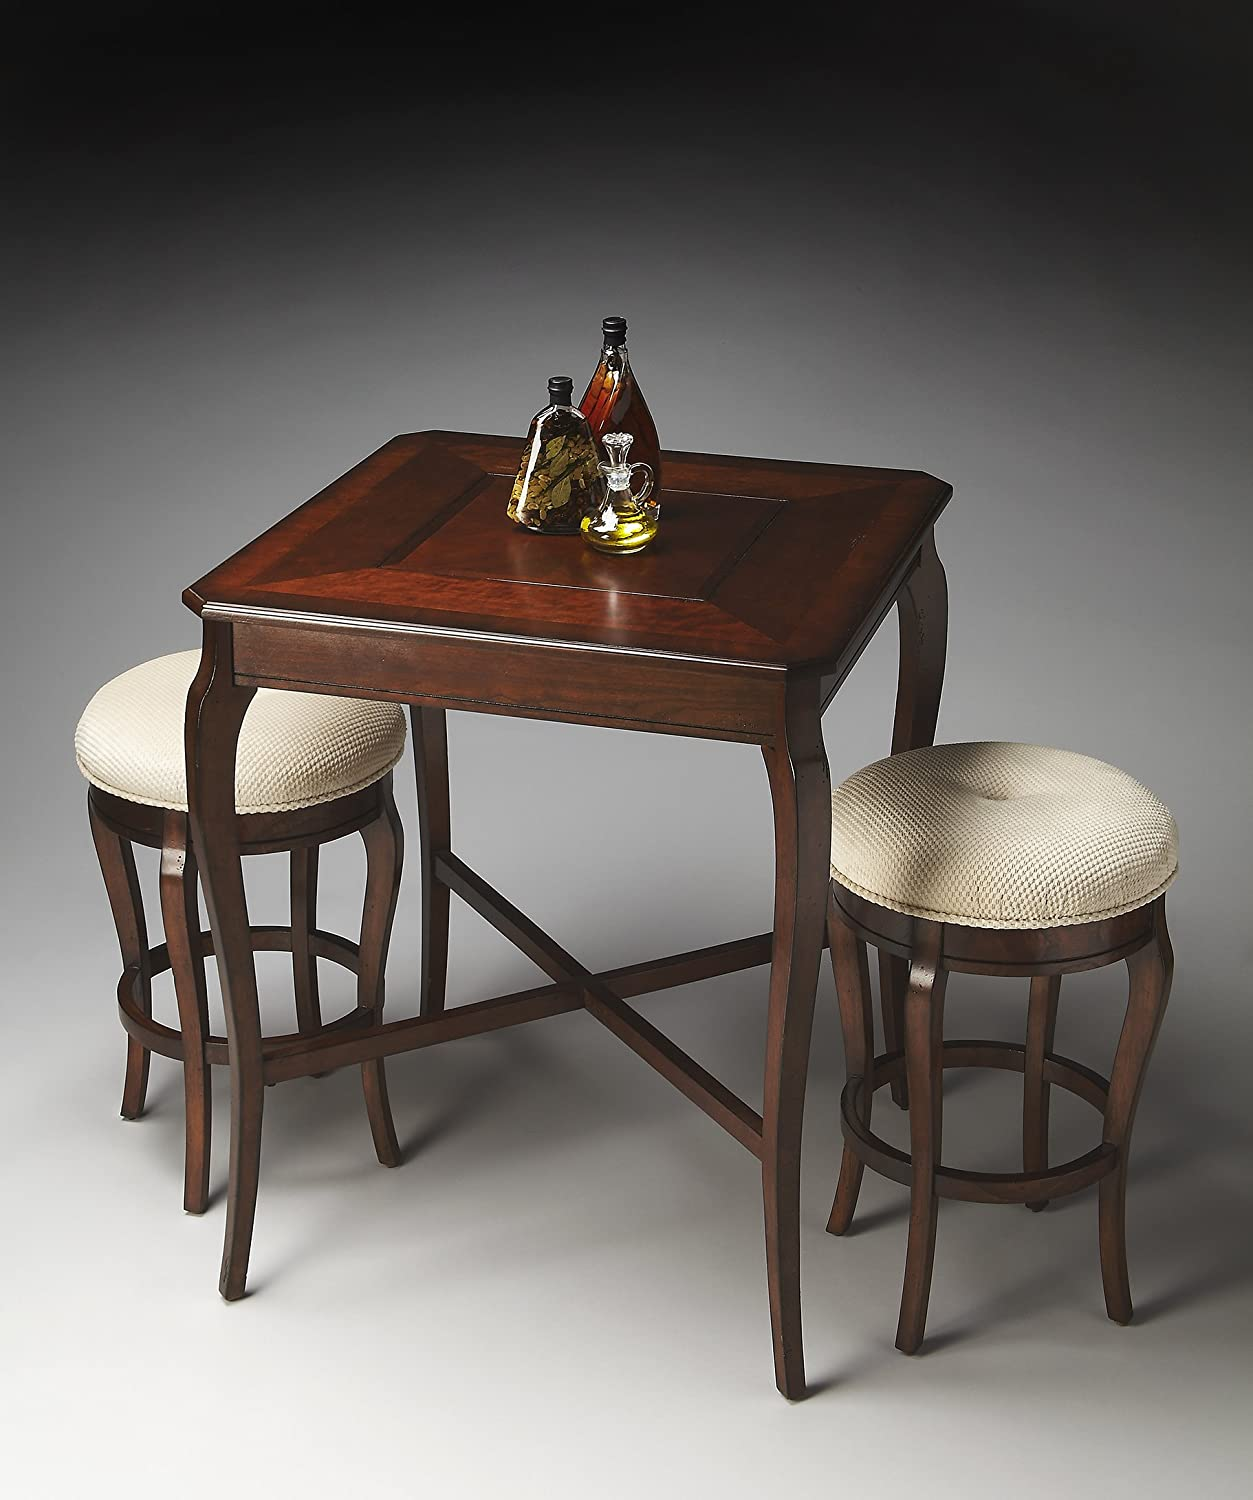 Wonderful Amazon.com: Butler Specialty Company Pub Game Table, Plantation Cherry:  Home U0026 Kitchen